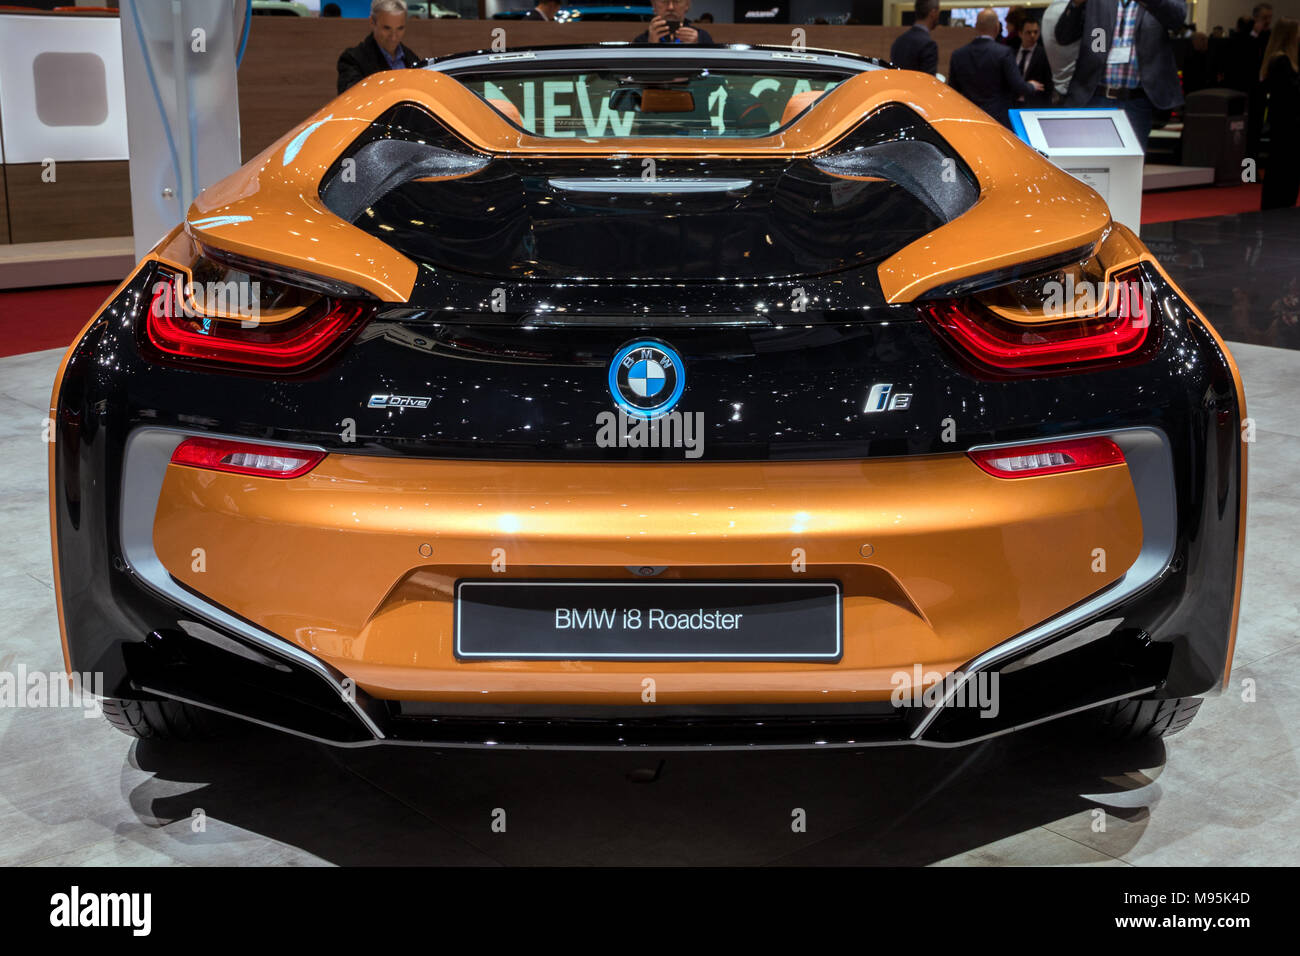 Geneva Switzerland March 7 2018 Rear View Of A Bmw I8 Roadster